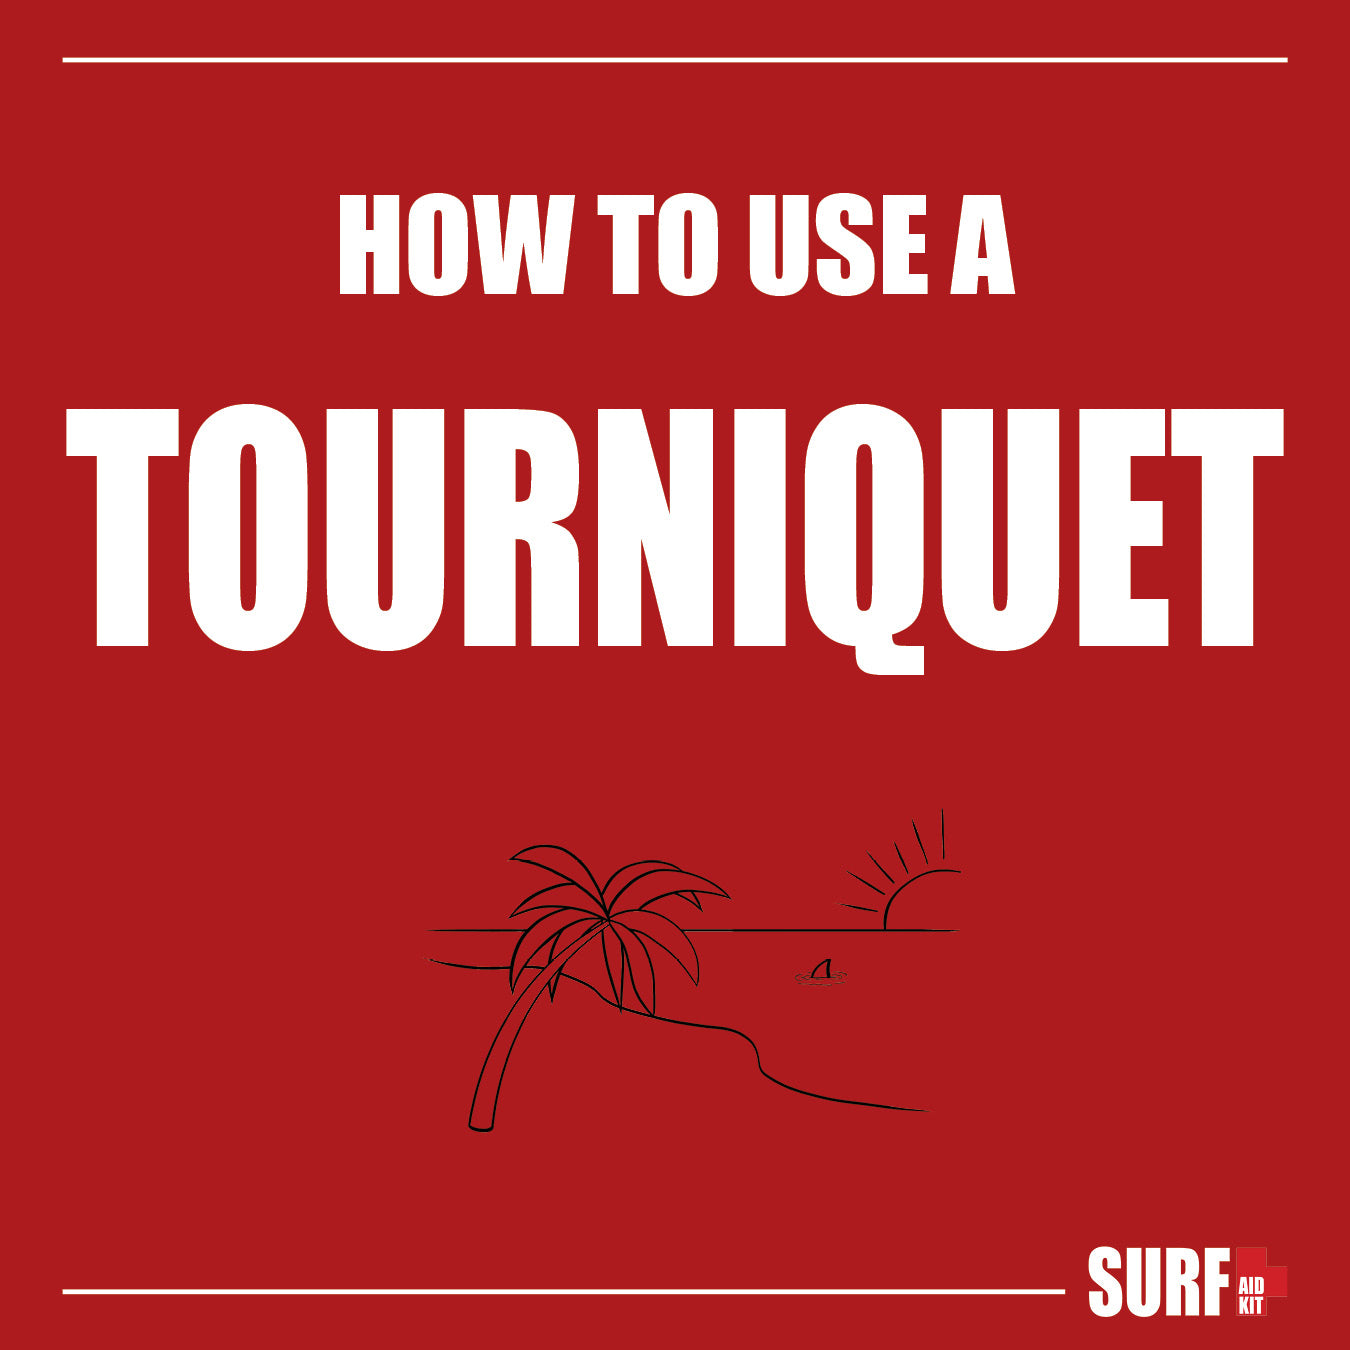 Tourniquet meaning and how to properly apply a tourniquet